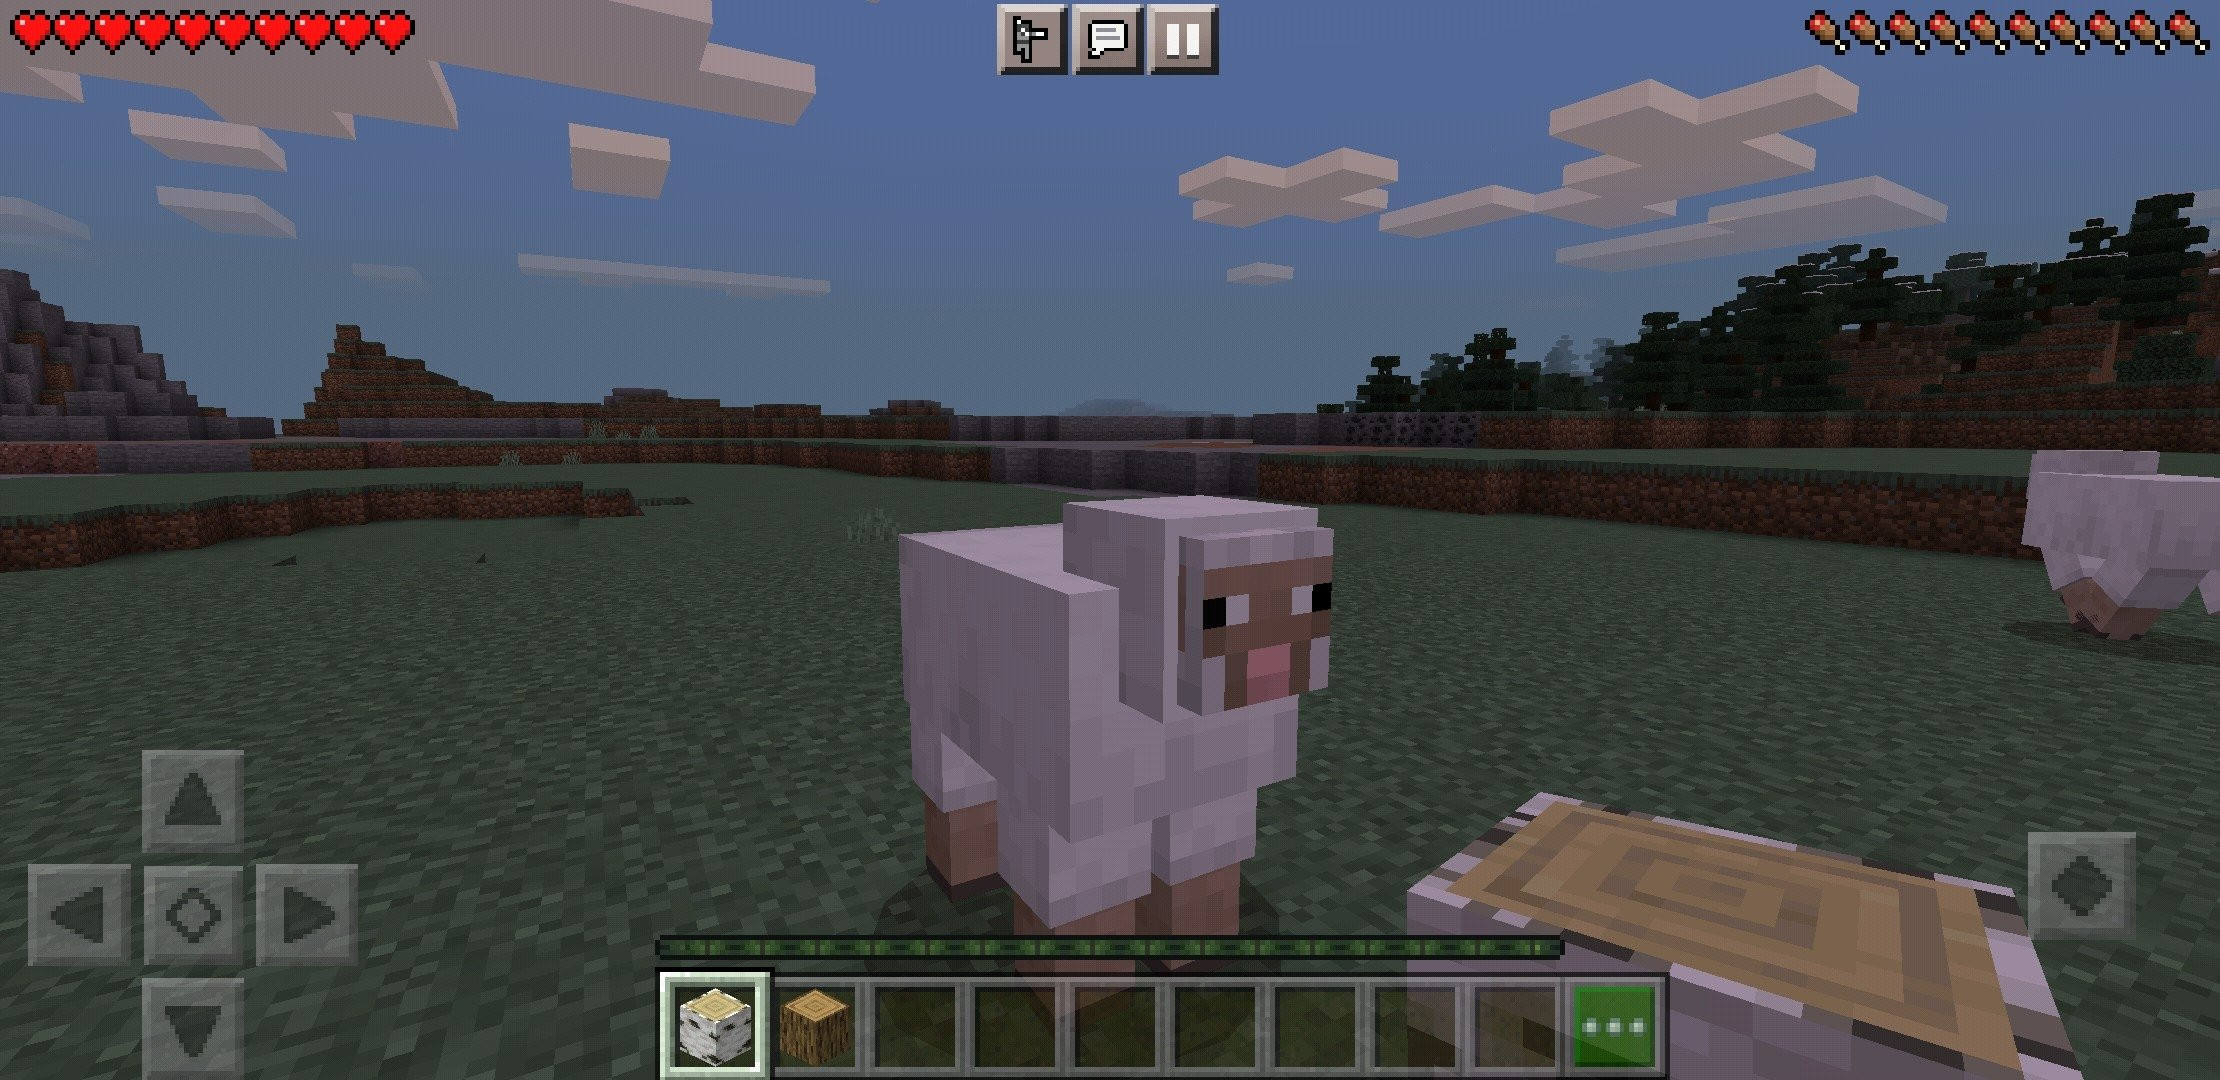 como descargar minecraft pe para windows 7 gratis